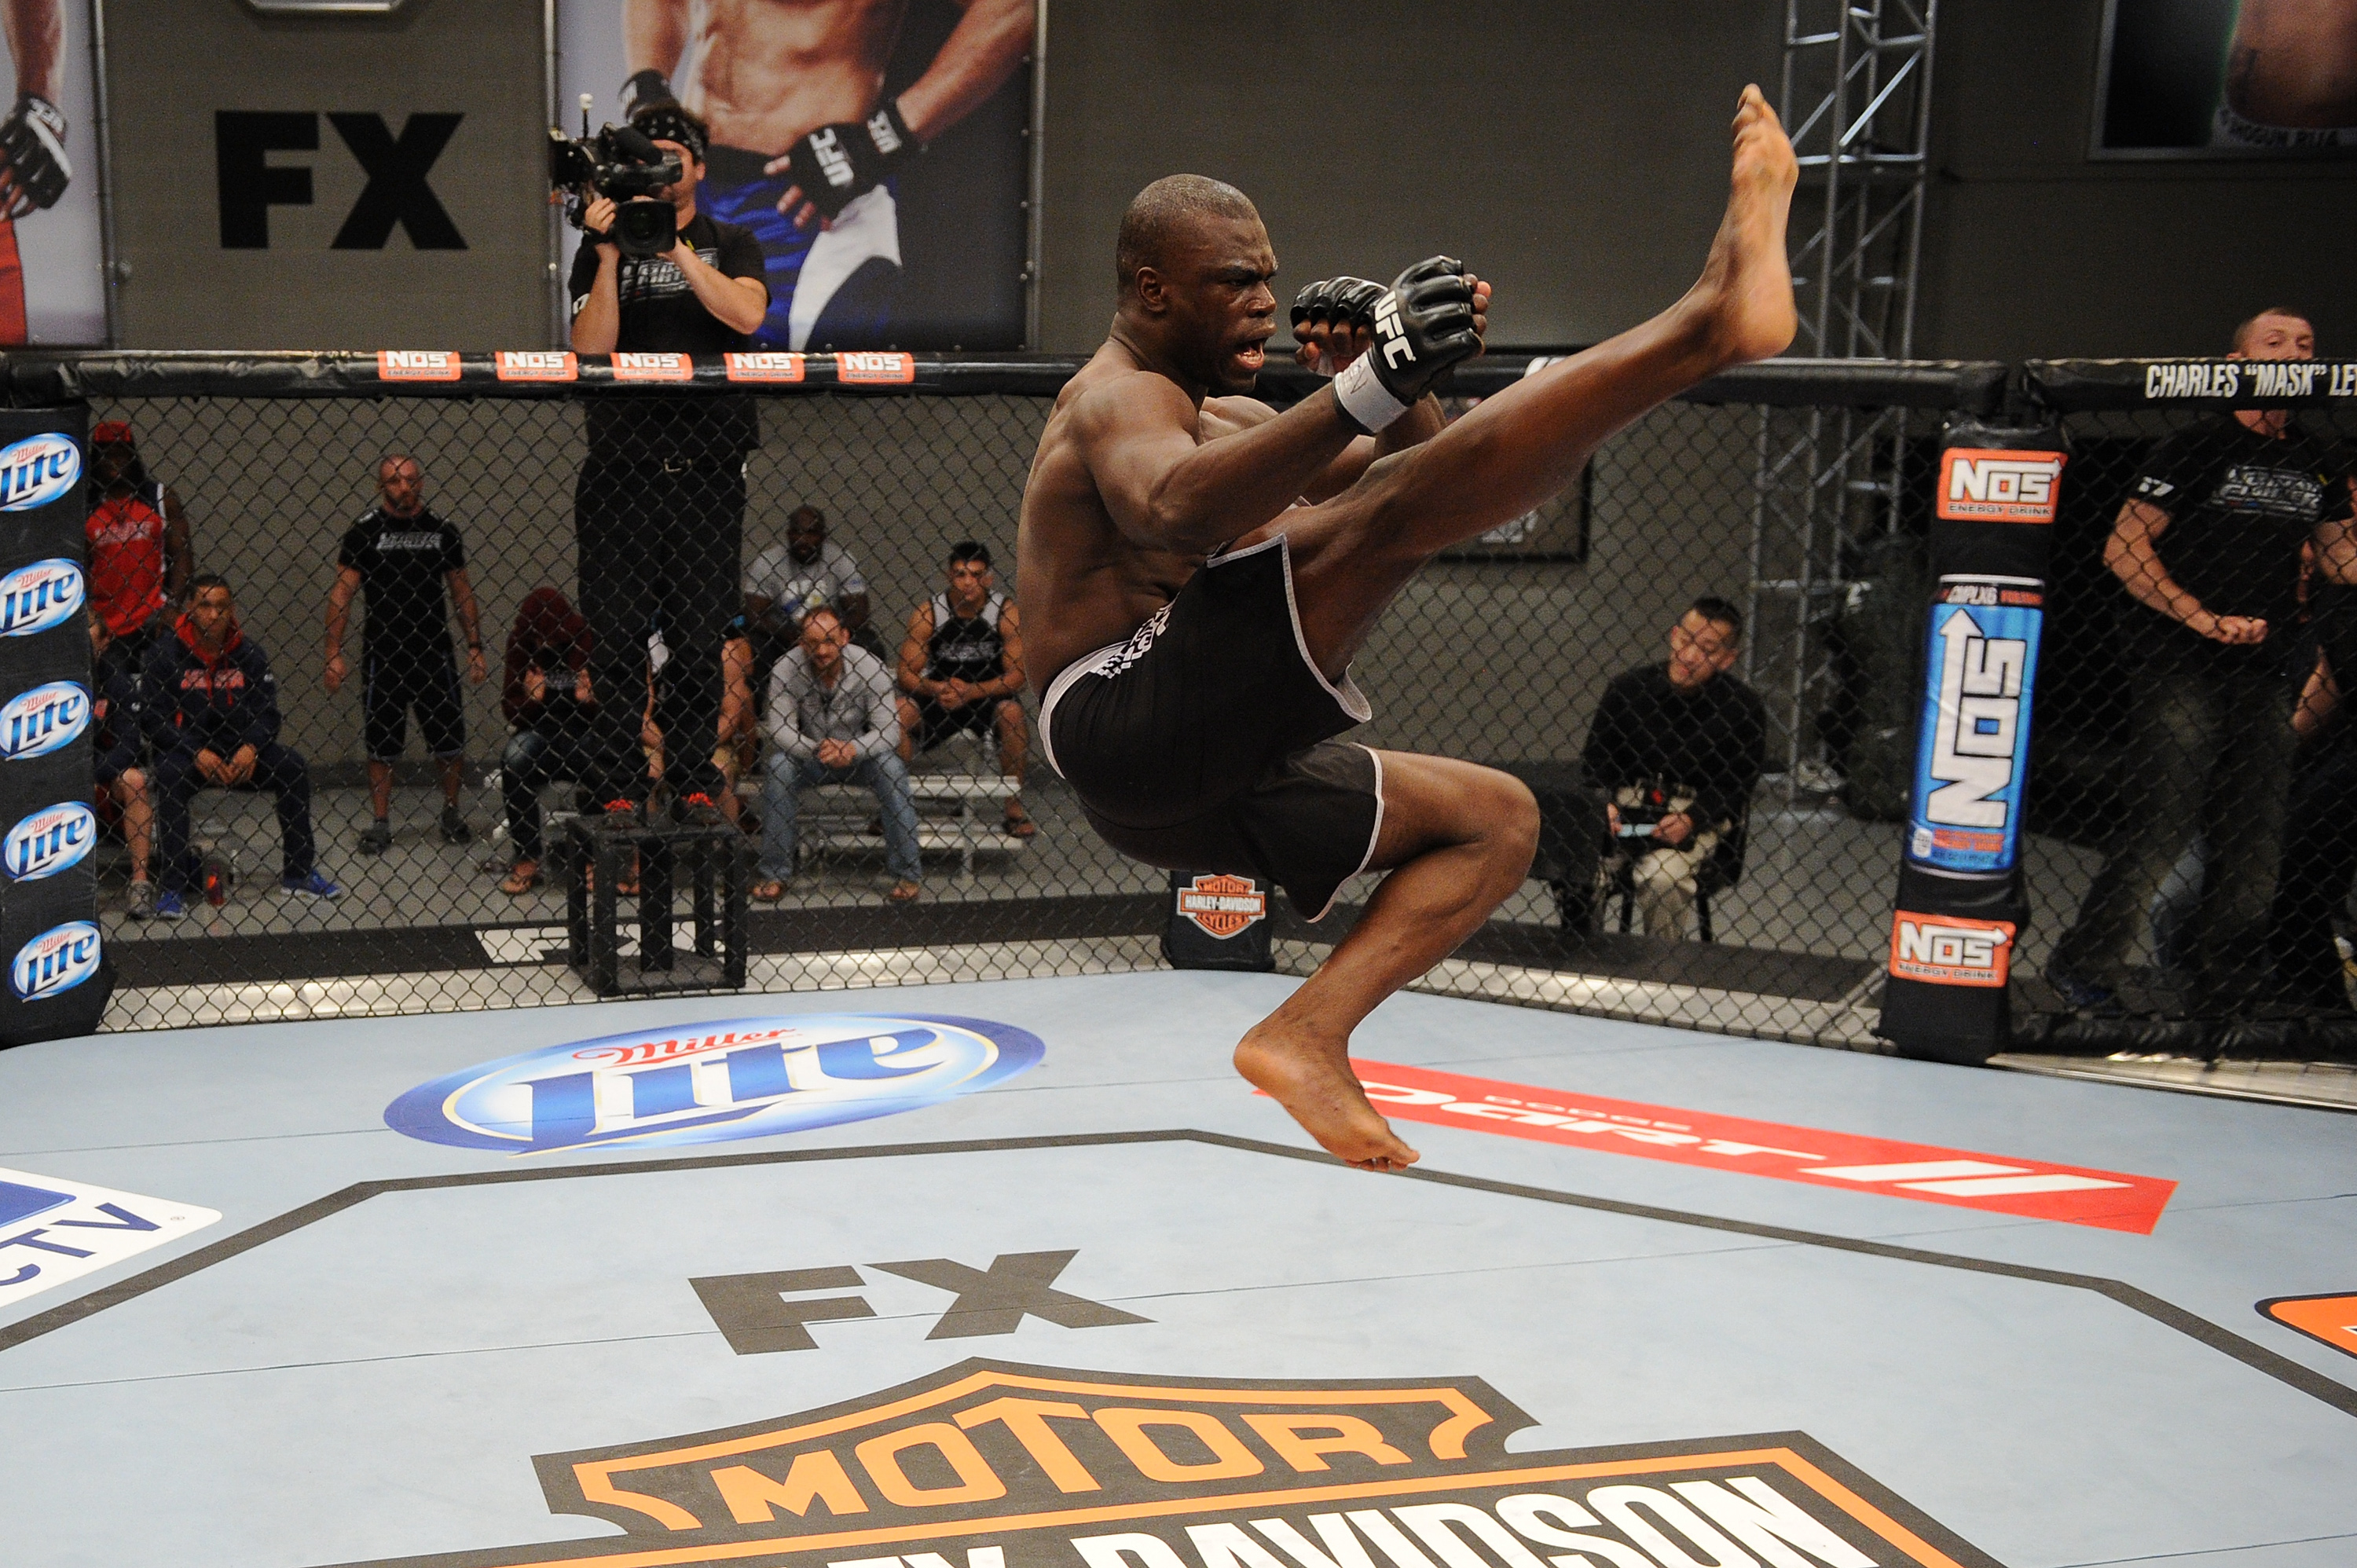 Uriah Hall put on one of the most notable highlight reels in Ultimate Fighter history.